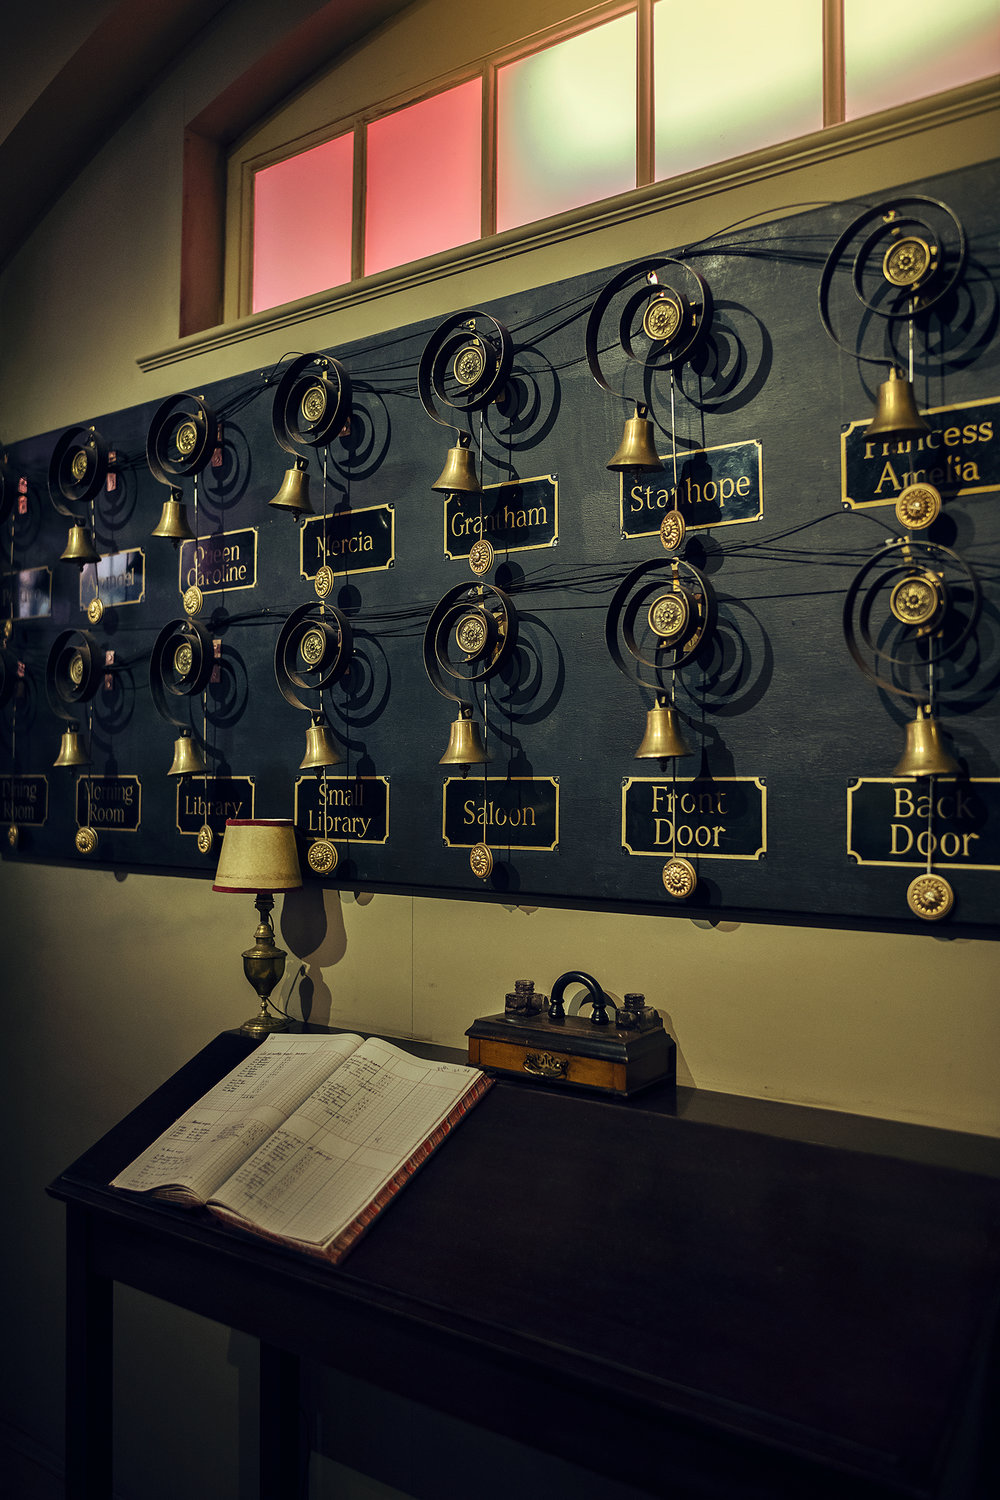 The bell board at Downton Abbey. © Guild Magazine - 2018.